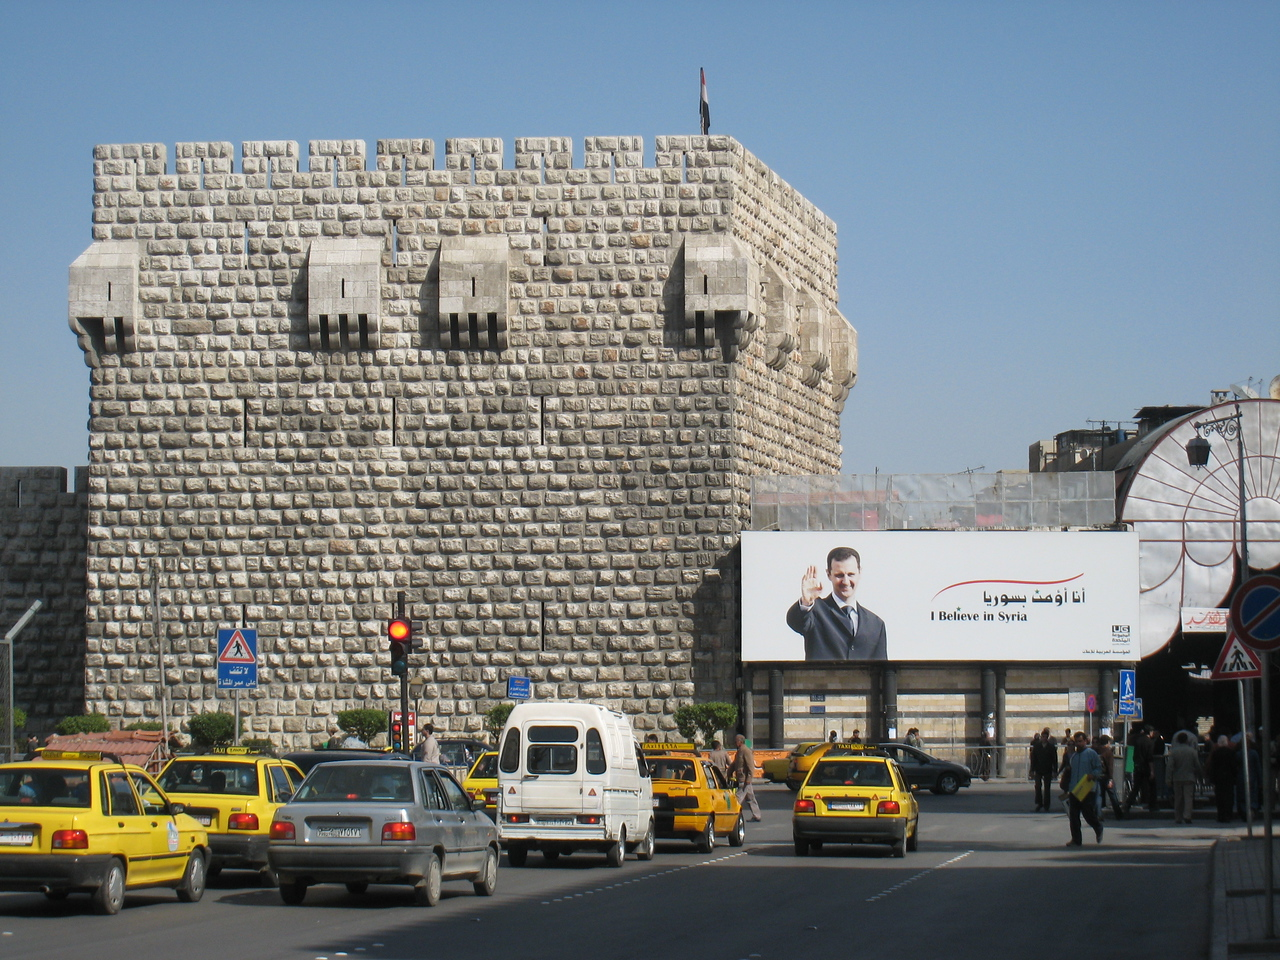 The citadel in Damascus which is just along from the Umayyed mosque.  The citadel is closed for restoration.  Beside it is a large poster of the Syrian president Basher al-Assad whose photo is everywhere and I mean everywhere!